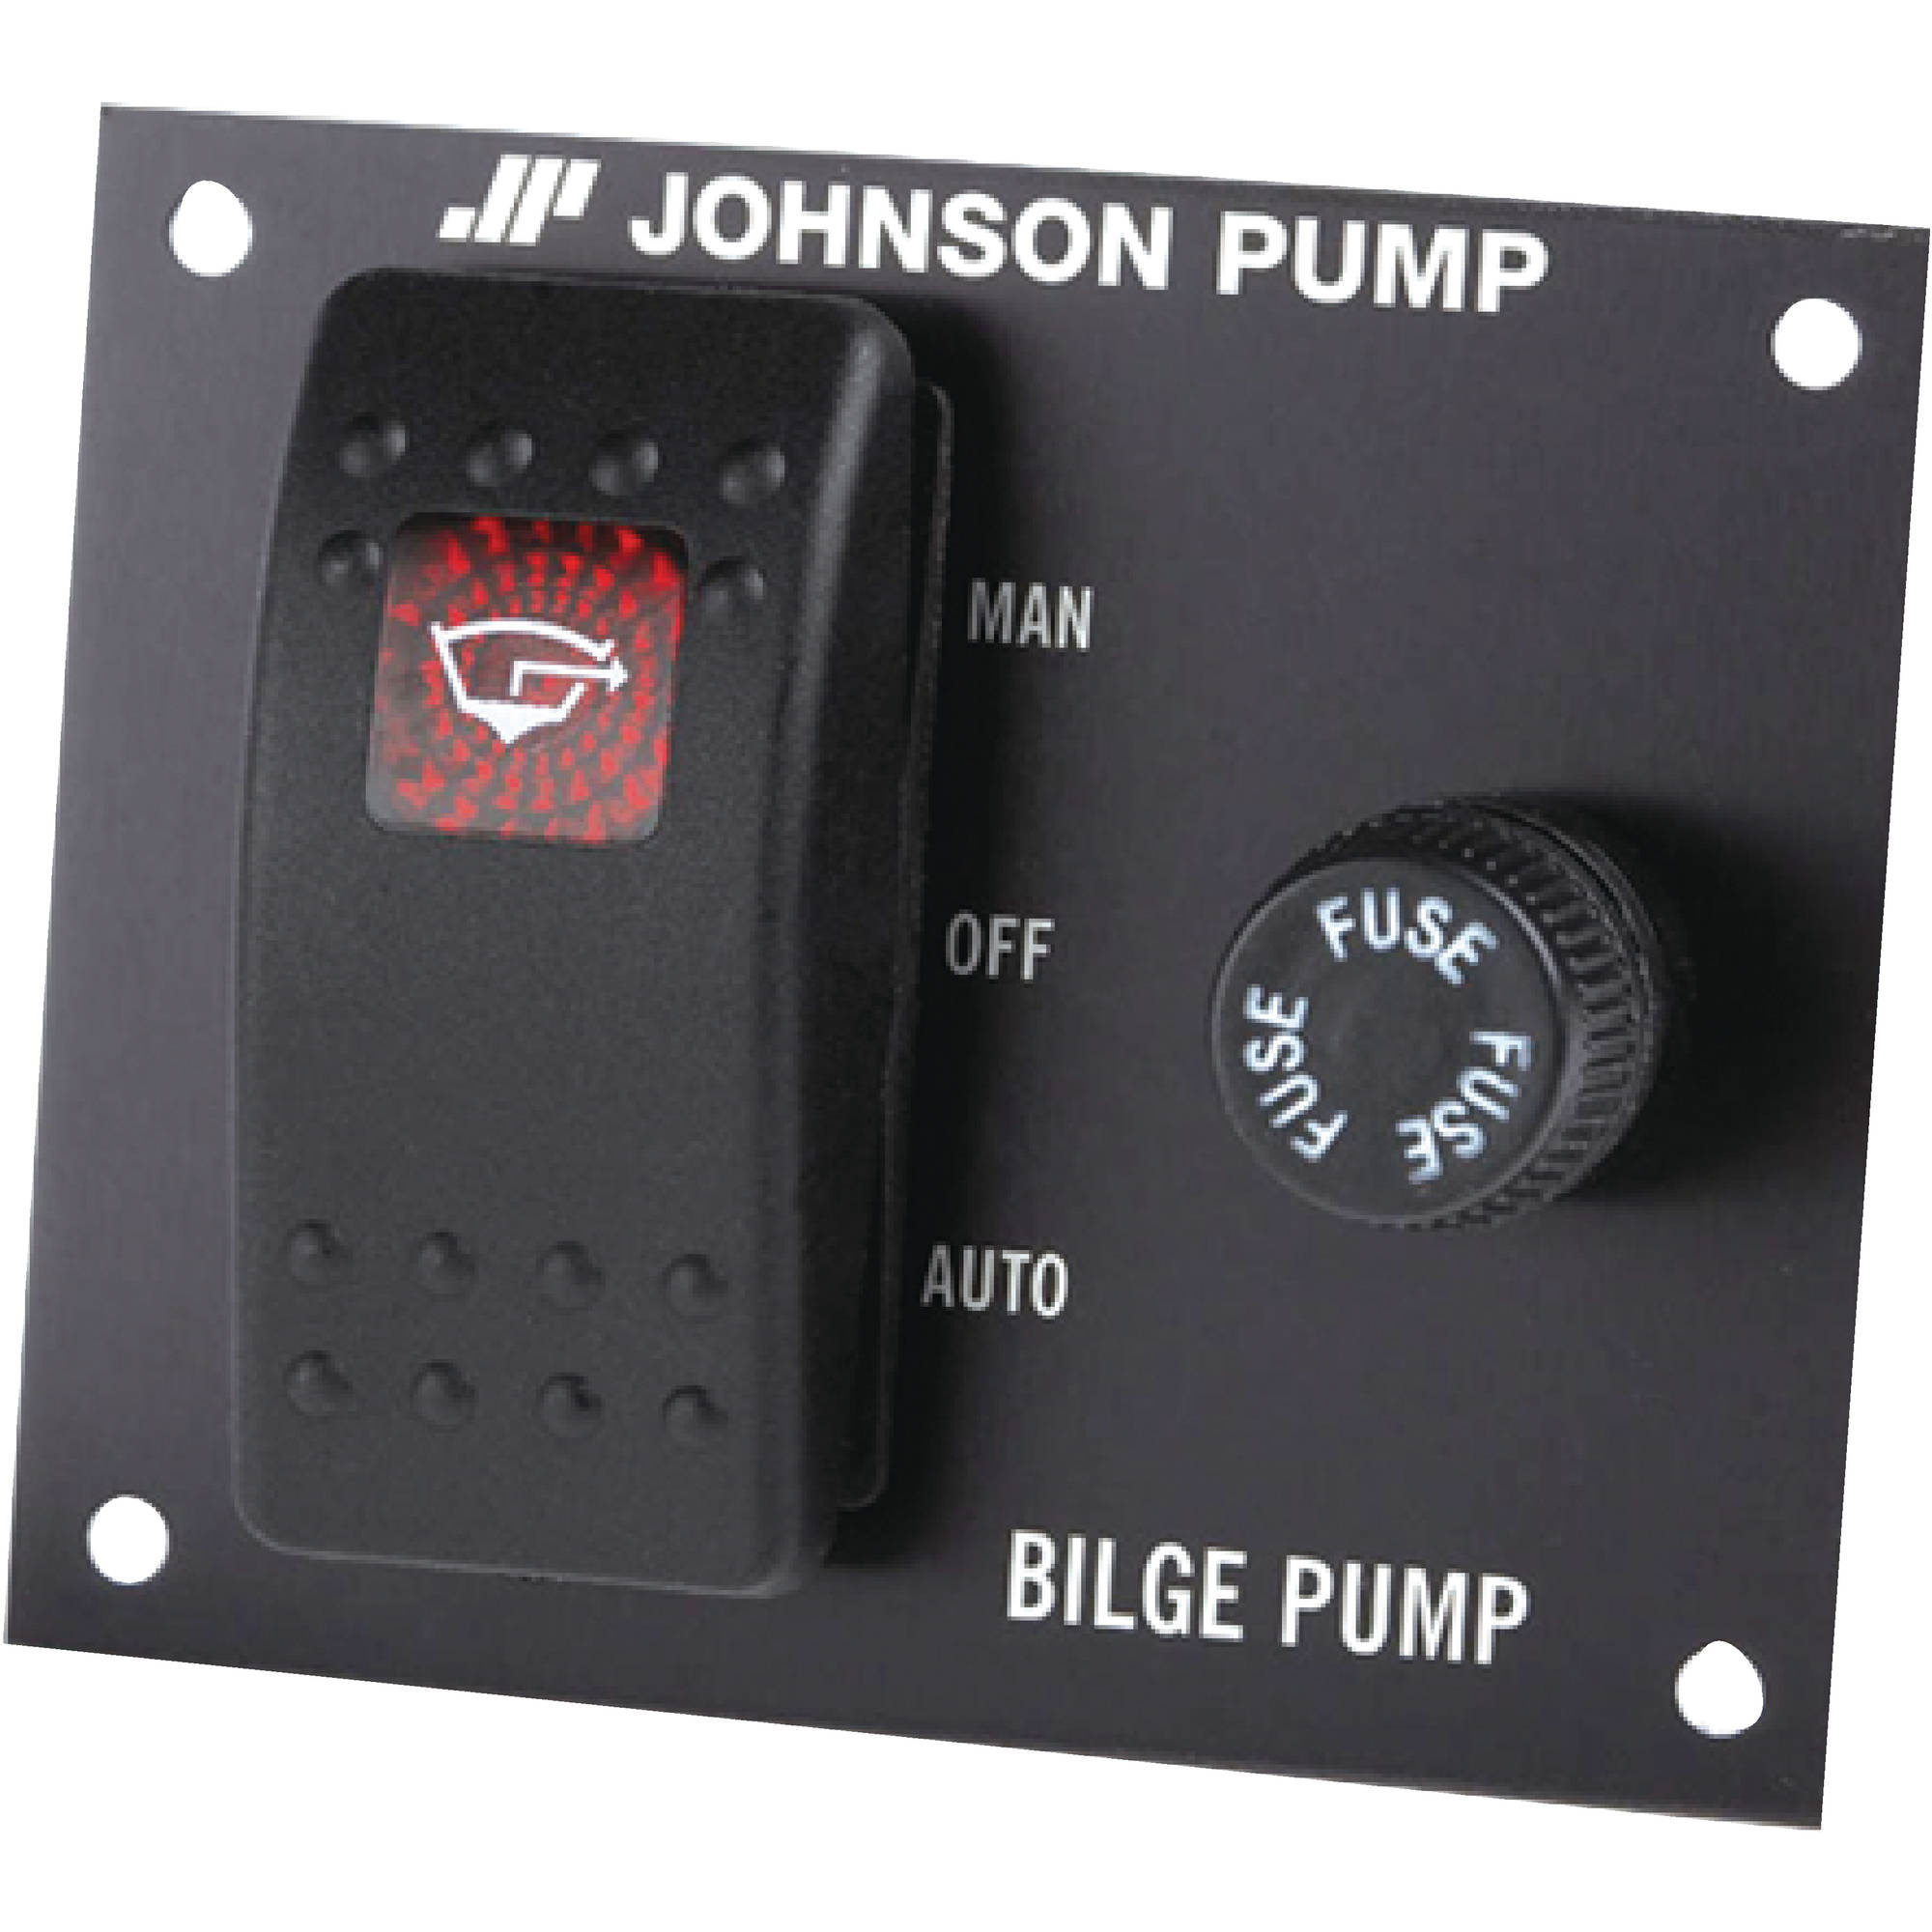 Johnson Pump 82044 3-Way Bilge Pump Control 24V